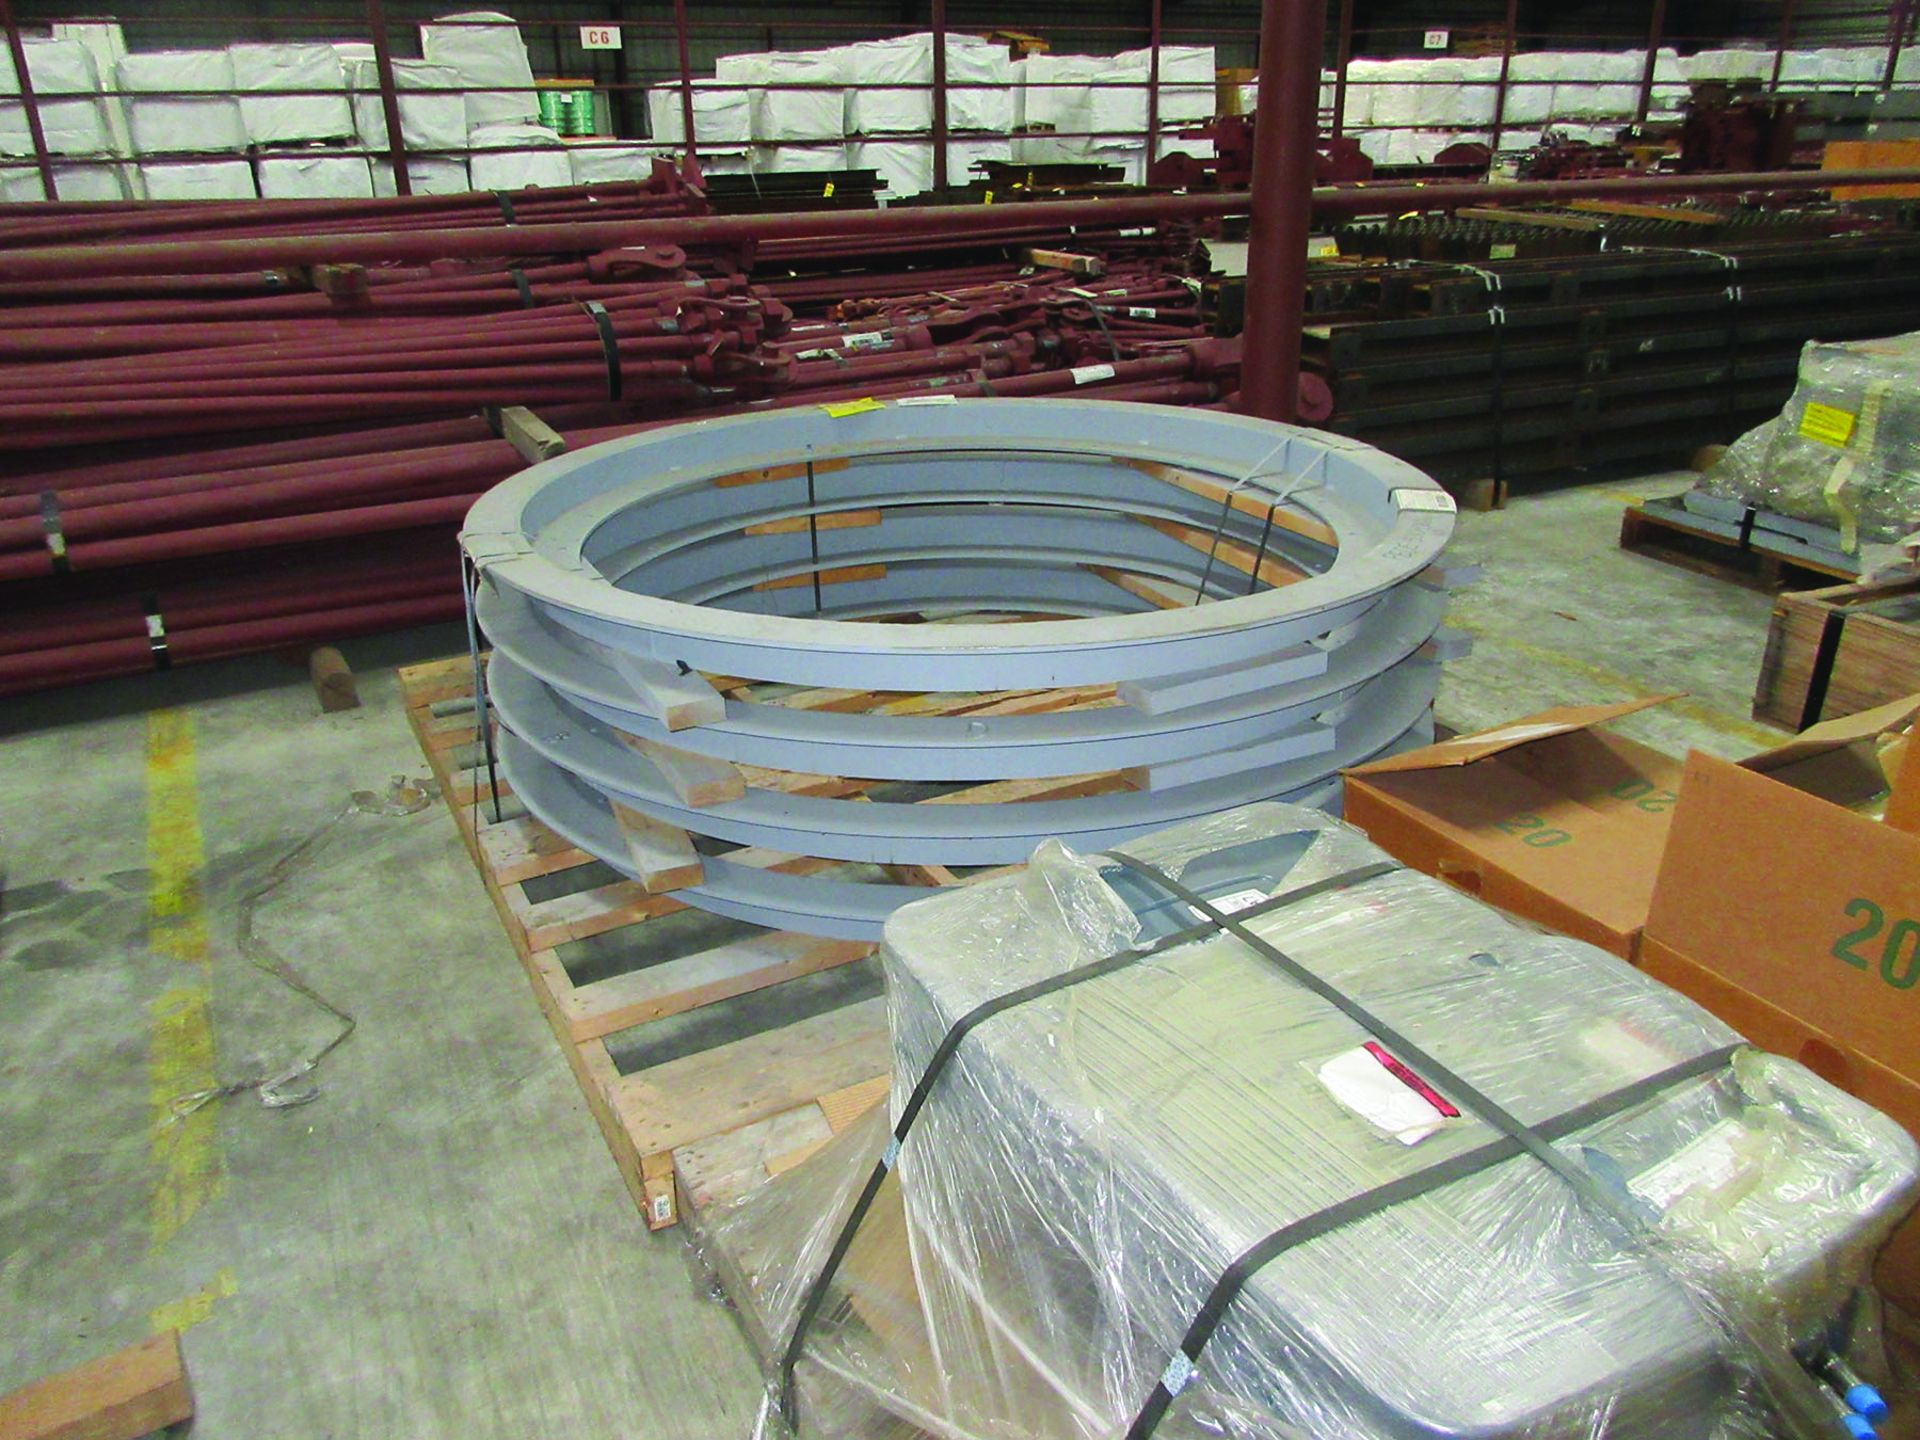 LOT OF ASSORTED PARTS: BARSETS, SHAFT COUPLINGS, COUPLING GUARDS, AND MORE, GRID A7 - Image 6 of 16